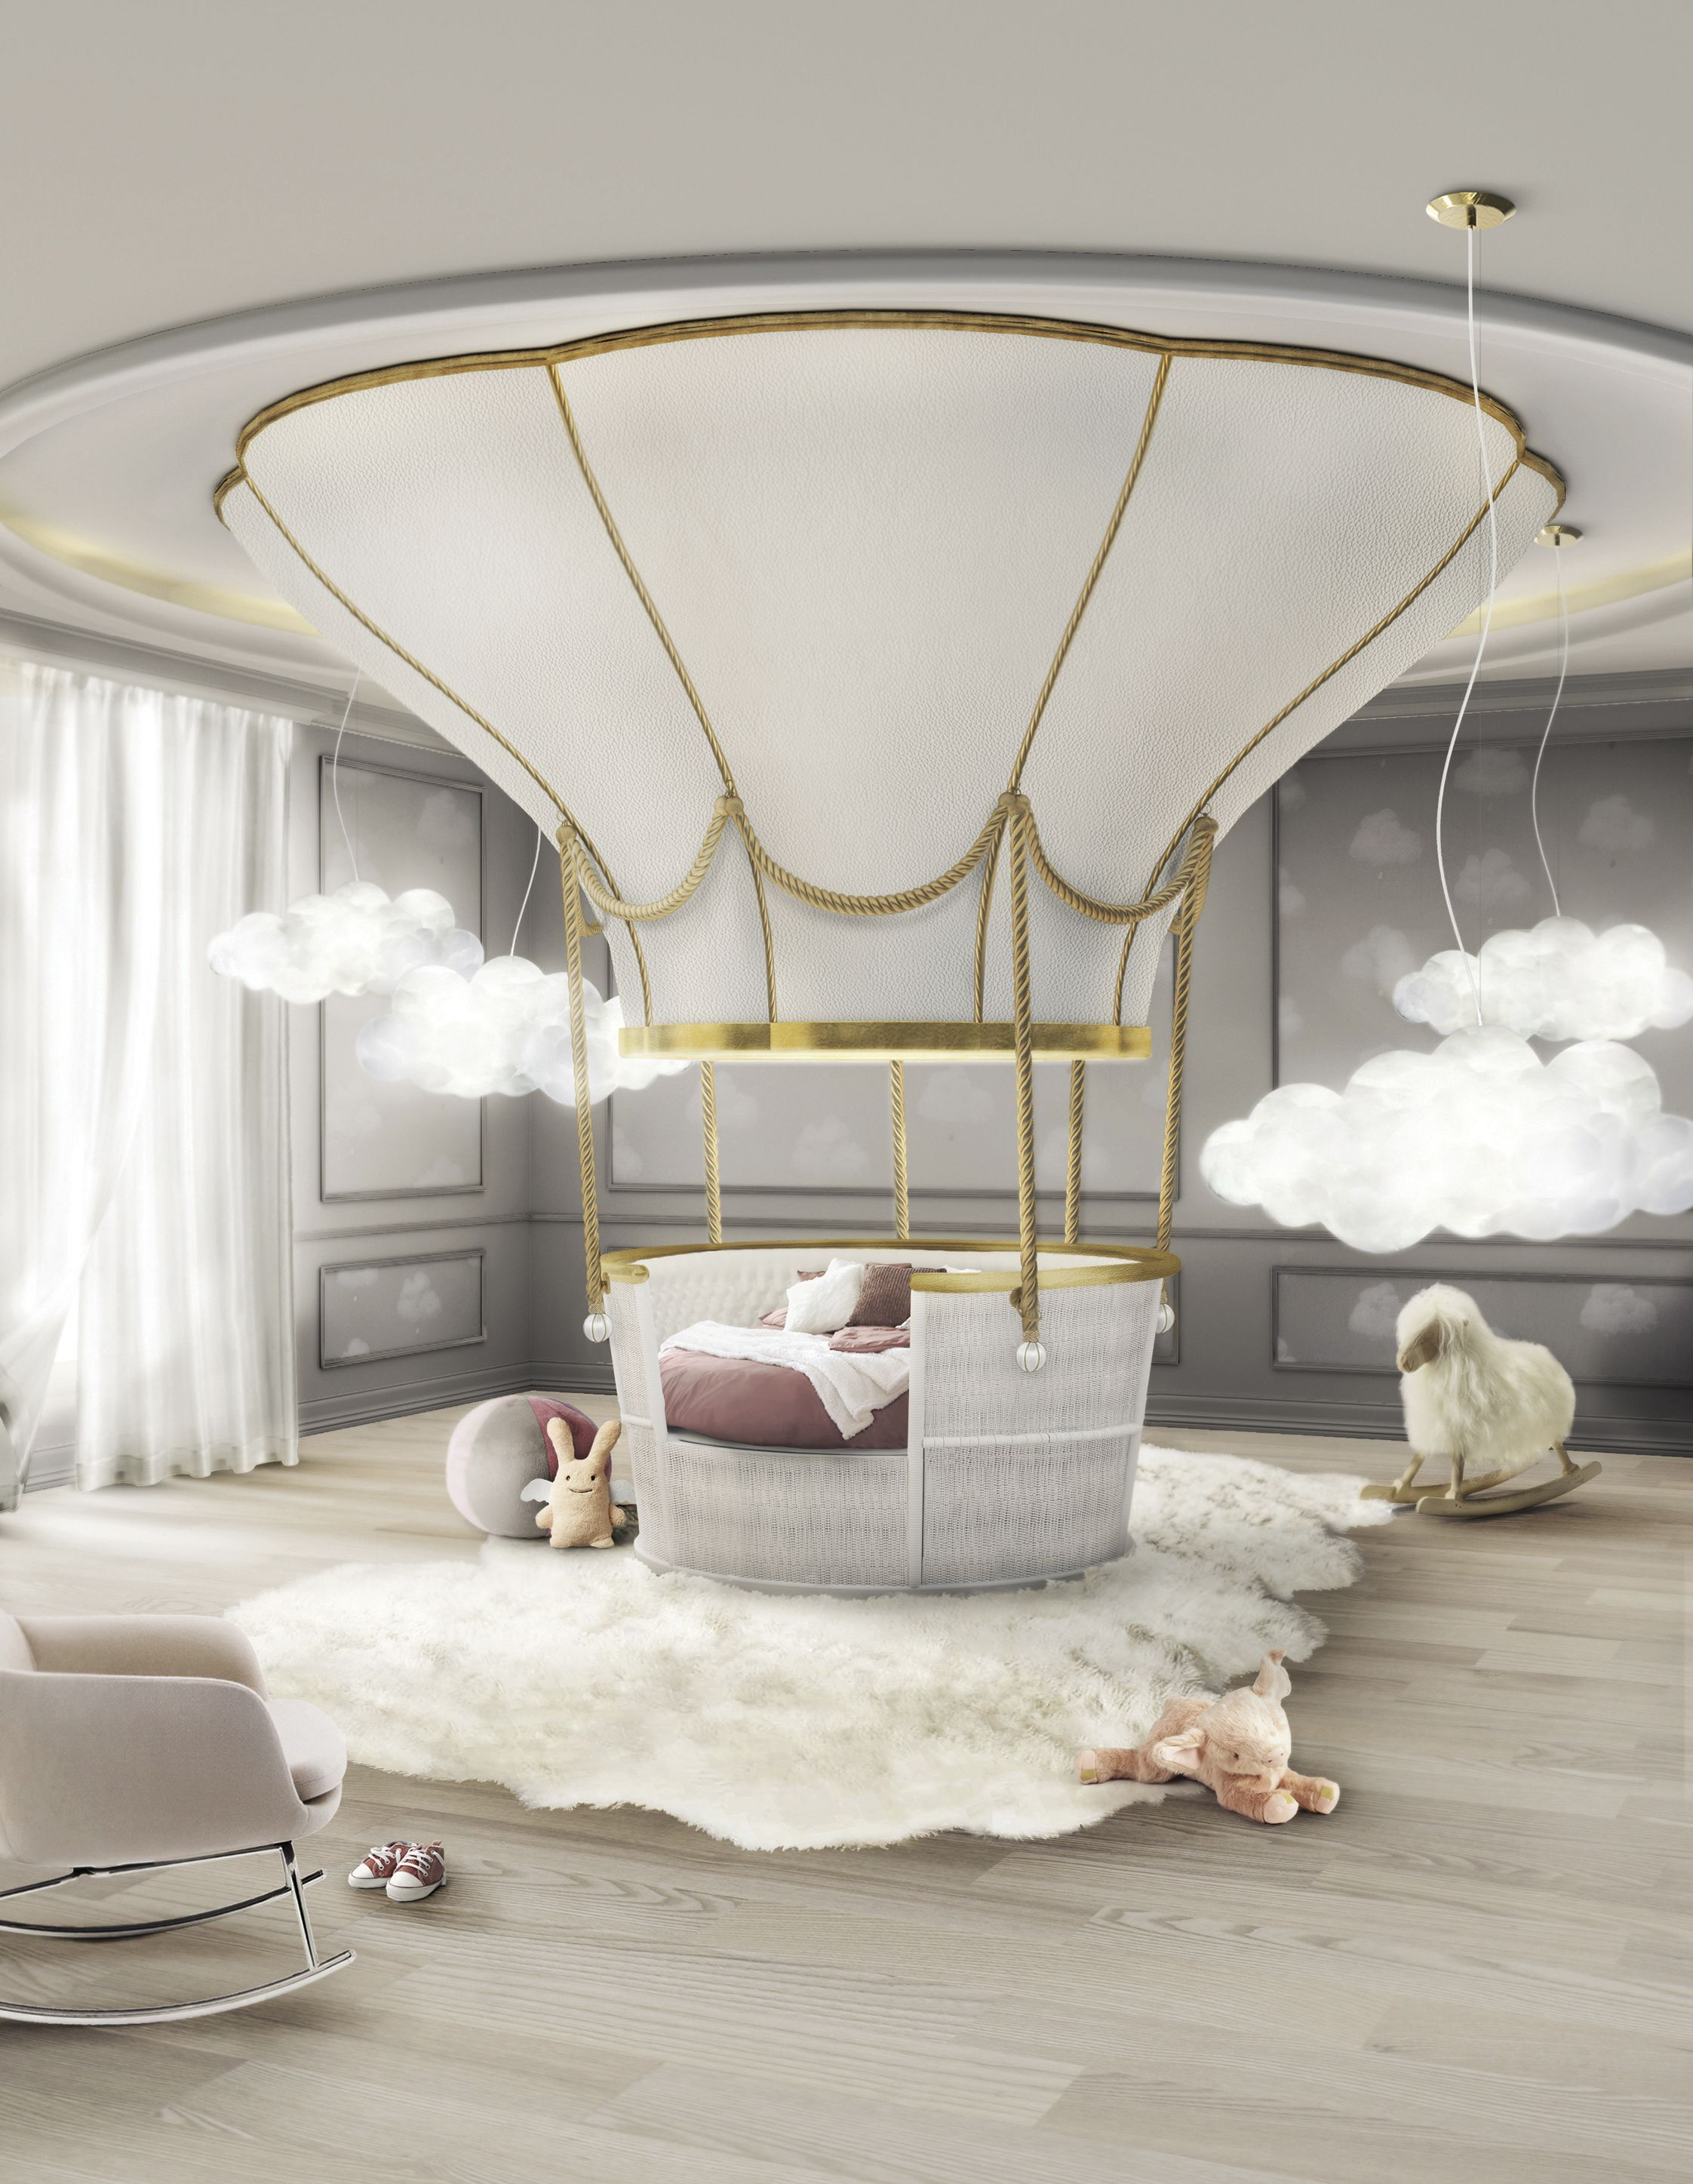 Day 2 inspiration week a selection of 15 bedroom design ideas that will make you sleep better